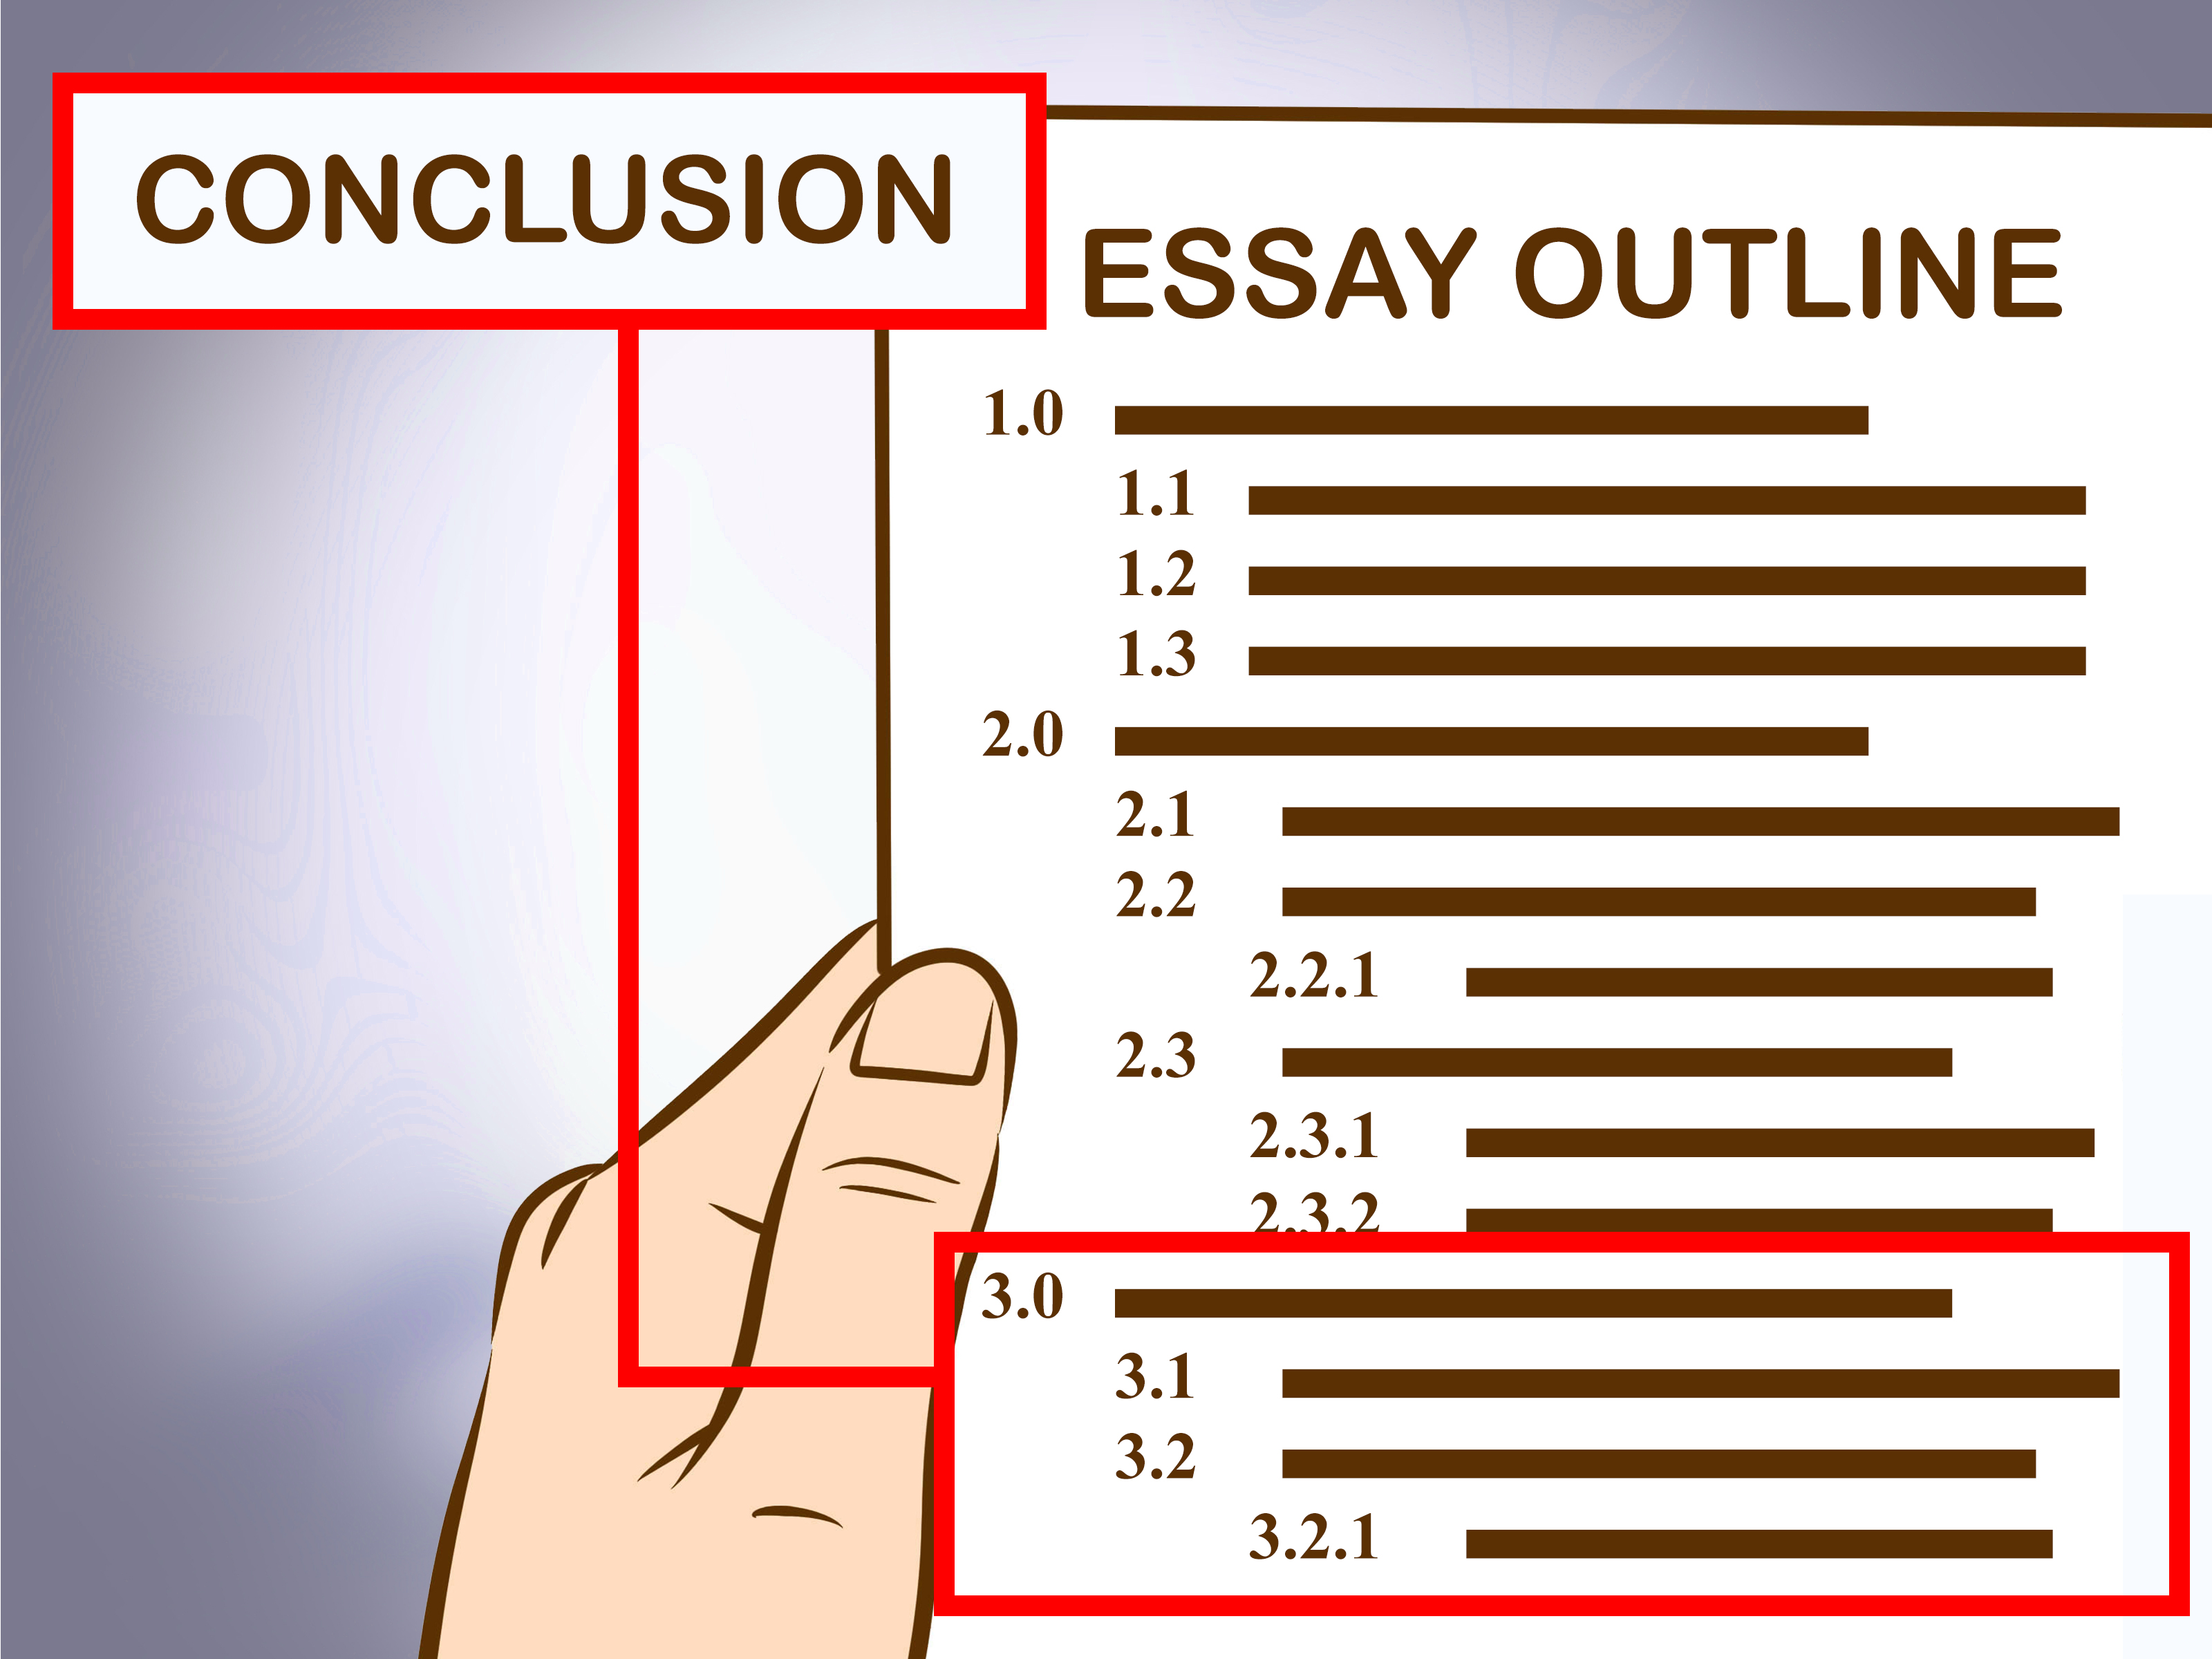 004 Essay Example Write An Outline Step Version How To Surprising Do Academic Fast Conclusion On A Book I Cite In Apa Format Full